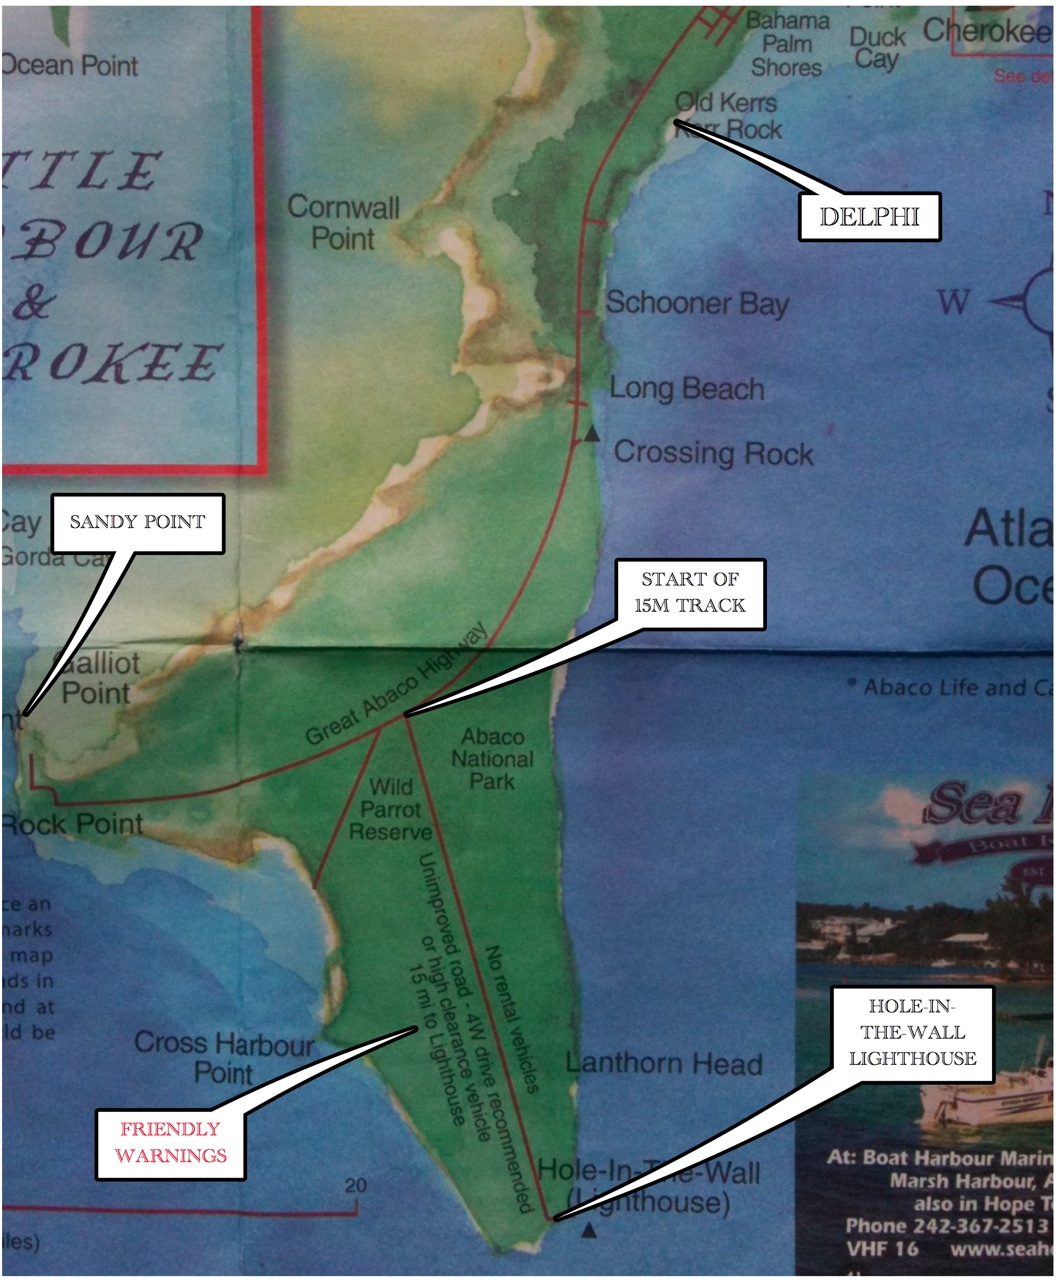 """""""TO THE LIGHTHOUSE…"""" A TRIP TO HOLE-IN-THE-WALL, ABACO ..."""